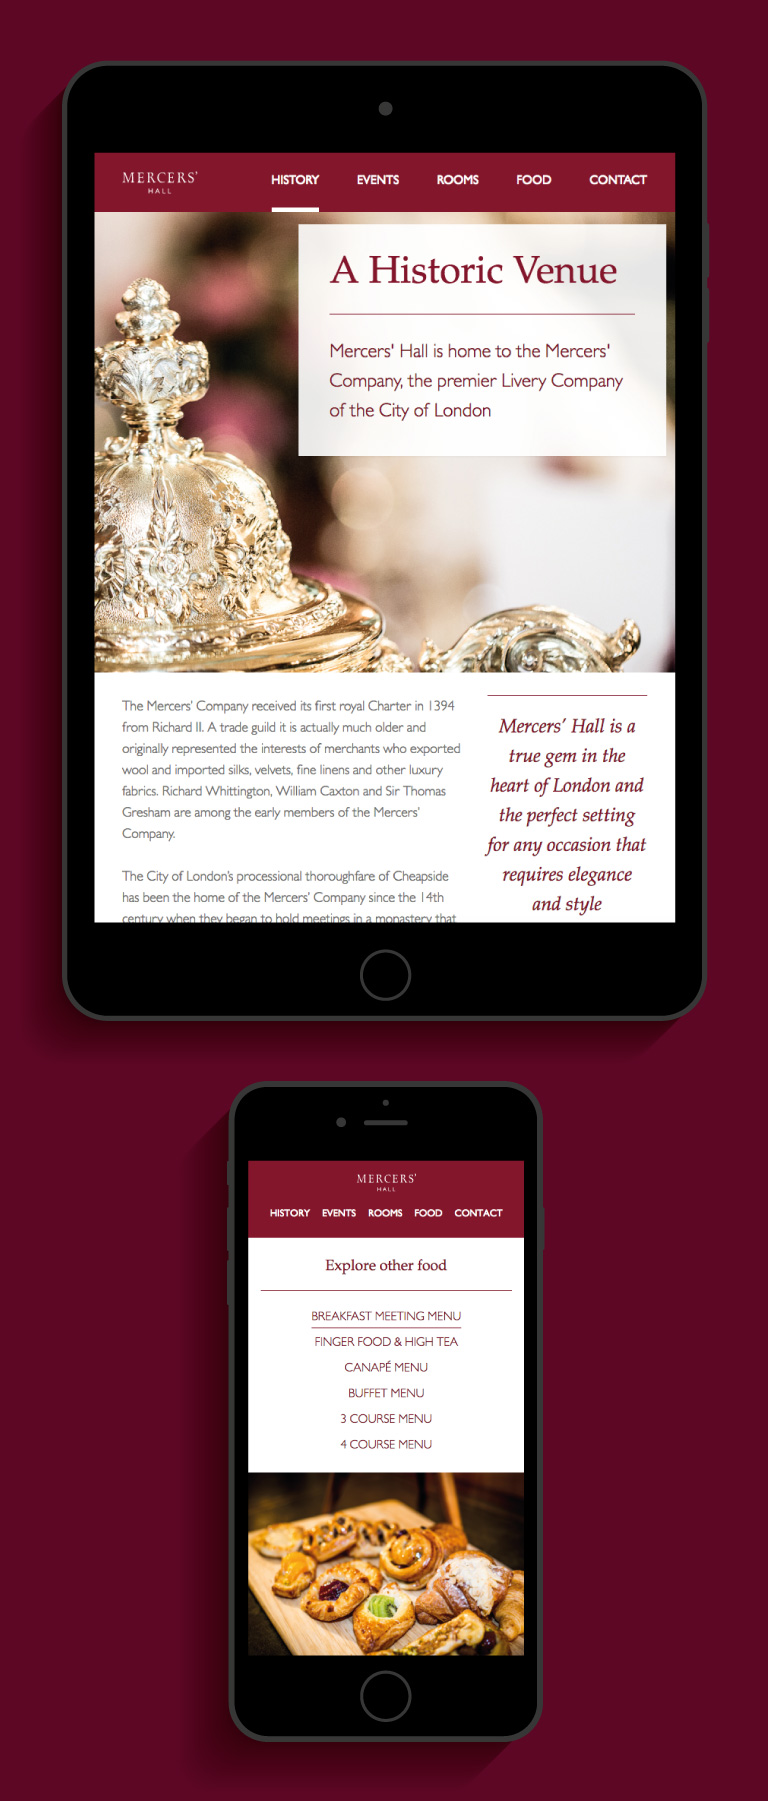 The Mercers' Hal website on an iPad and iPhone - mobile